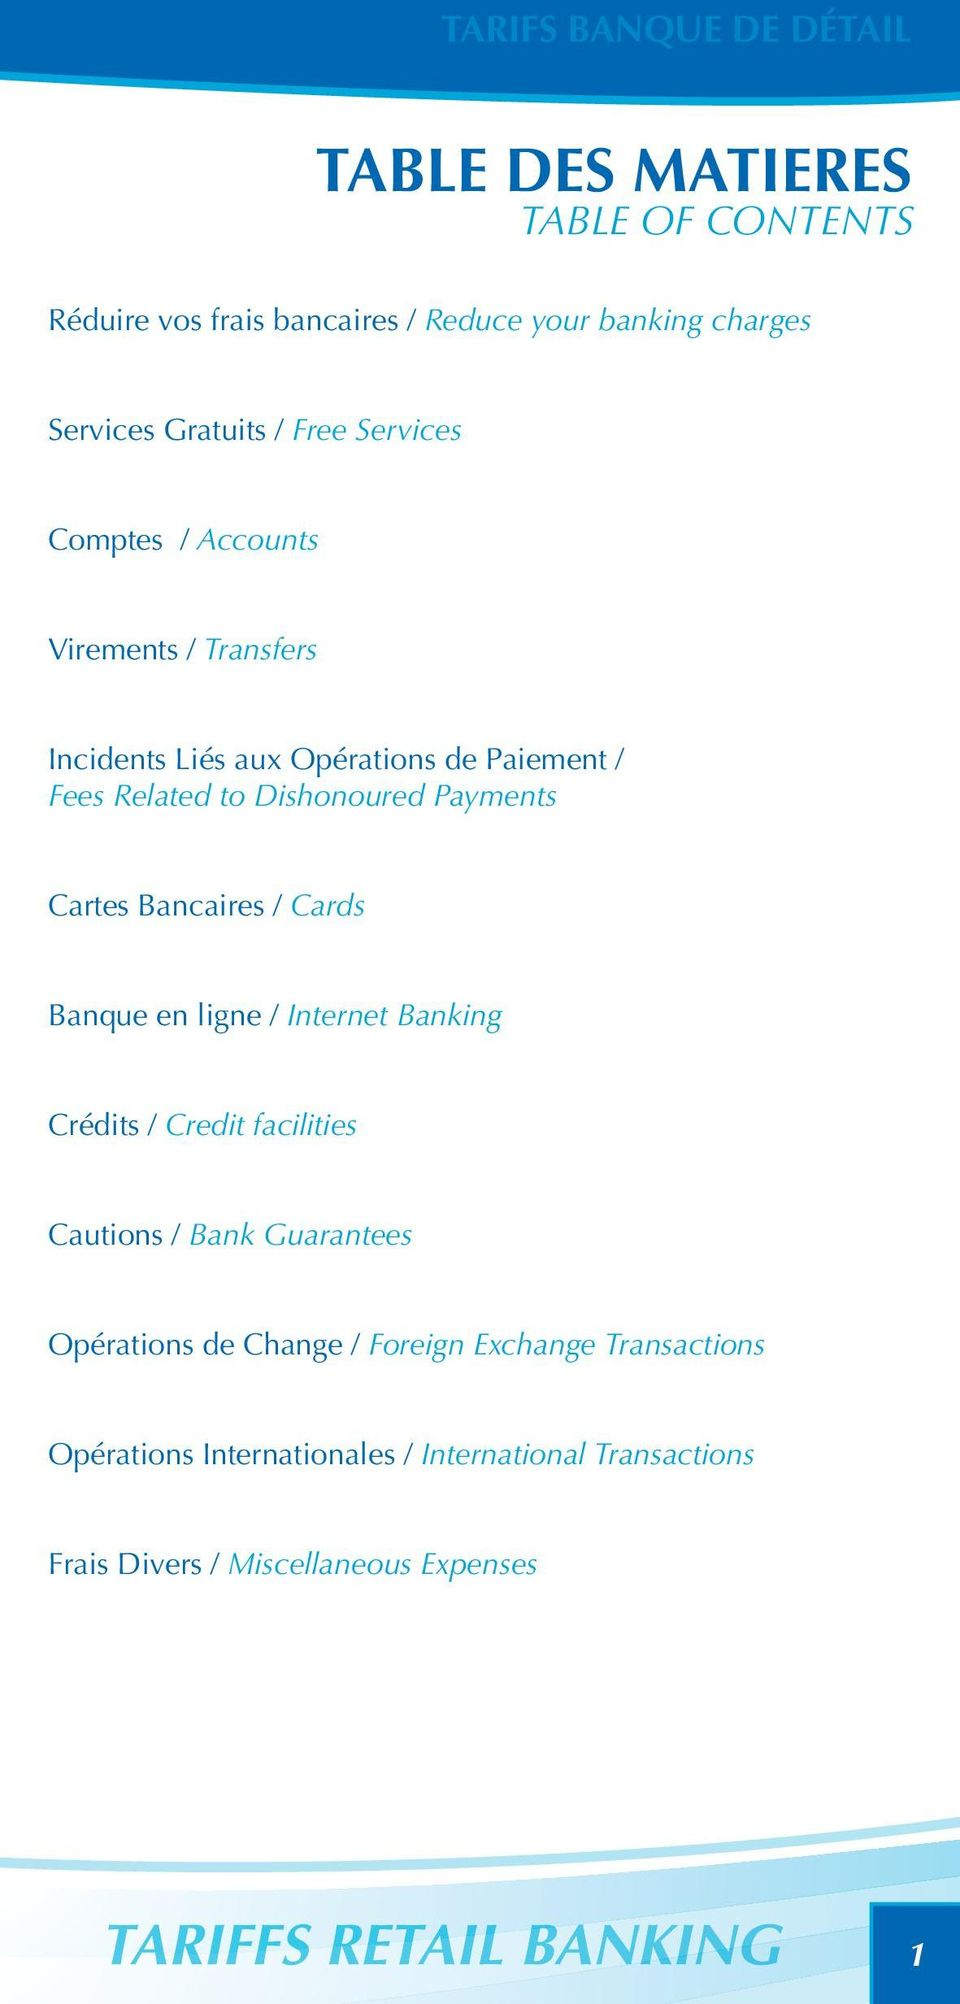 Bancaires / Cards Banque en ligne / Internet Banking Crédits / Credit facilities Cautions / Bank Guarantees Opérations de Change